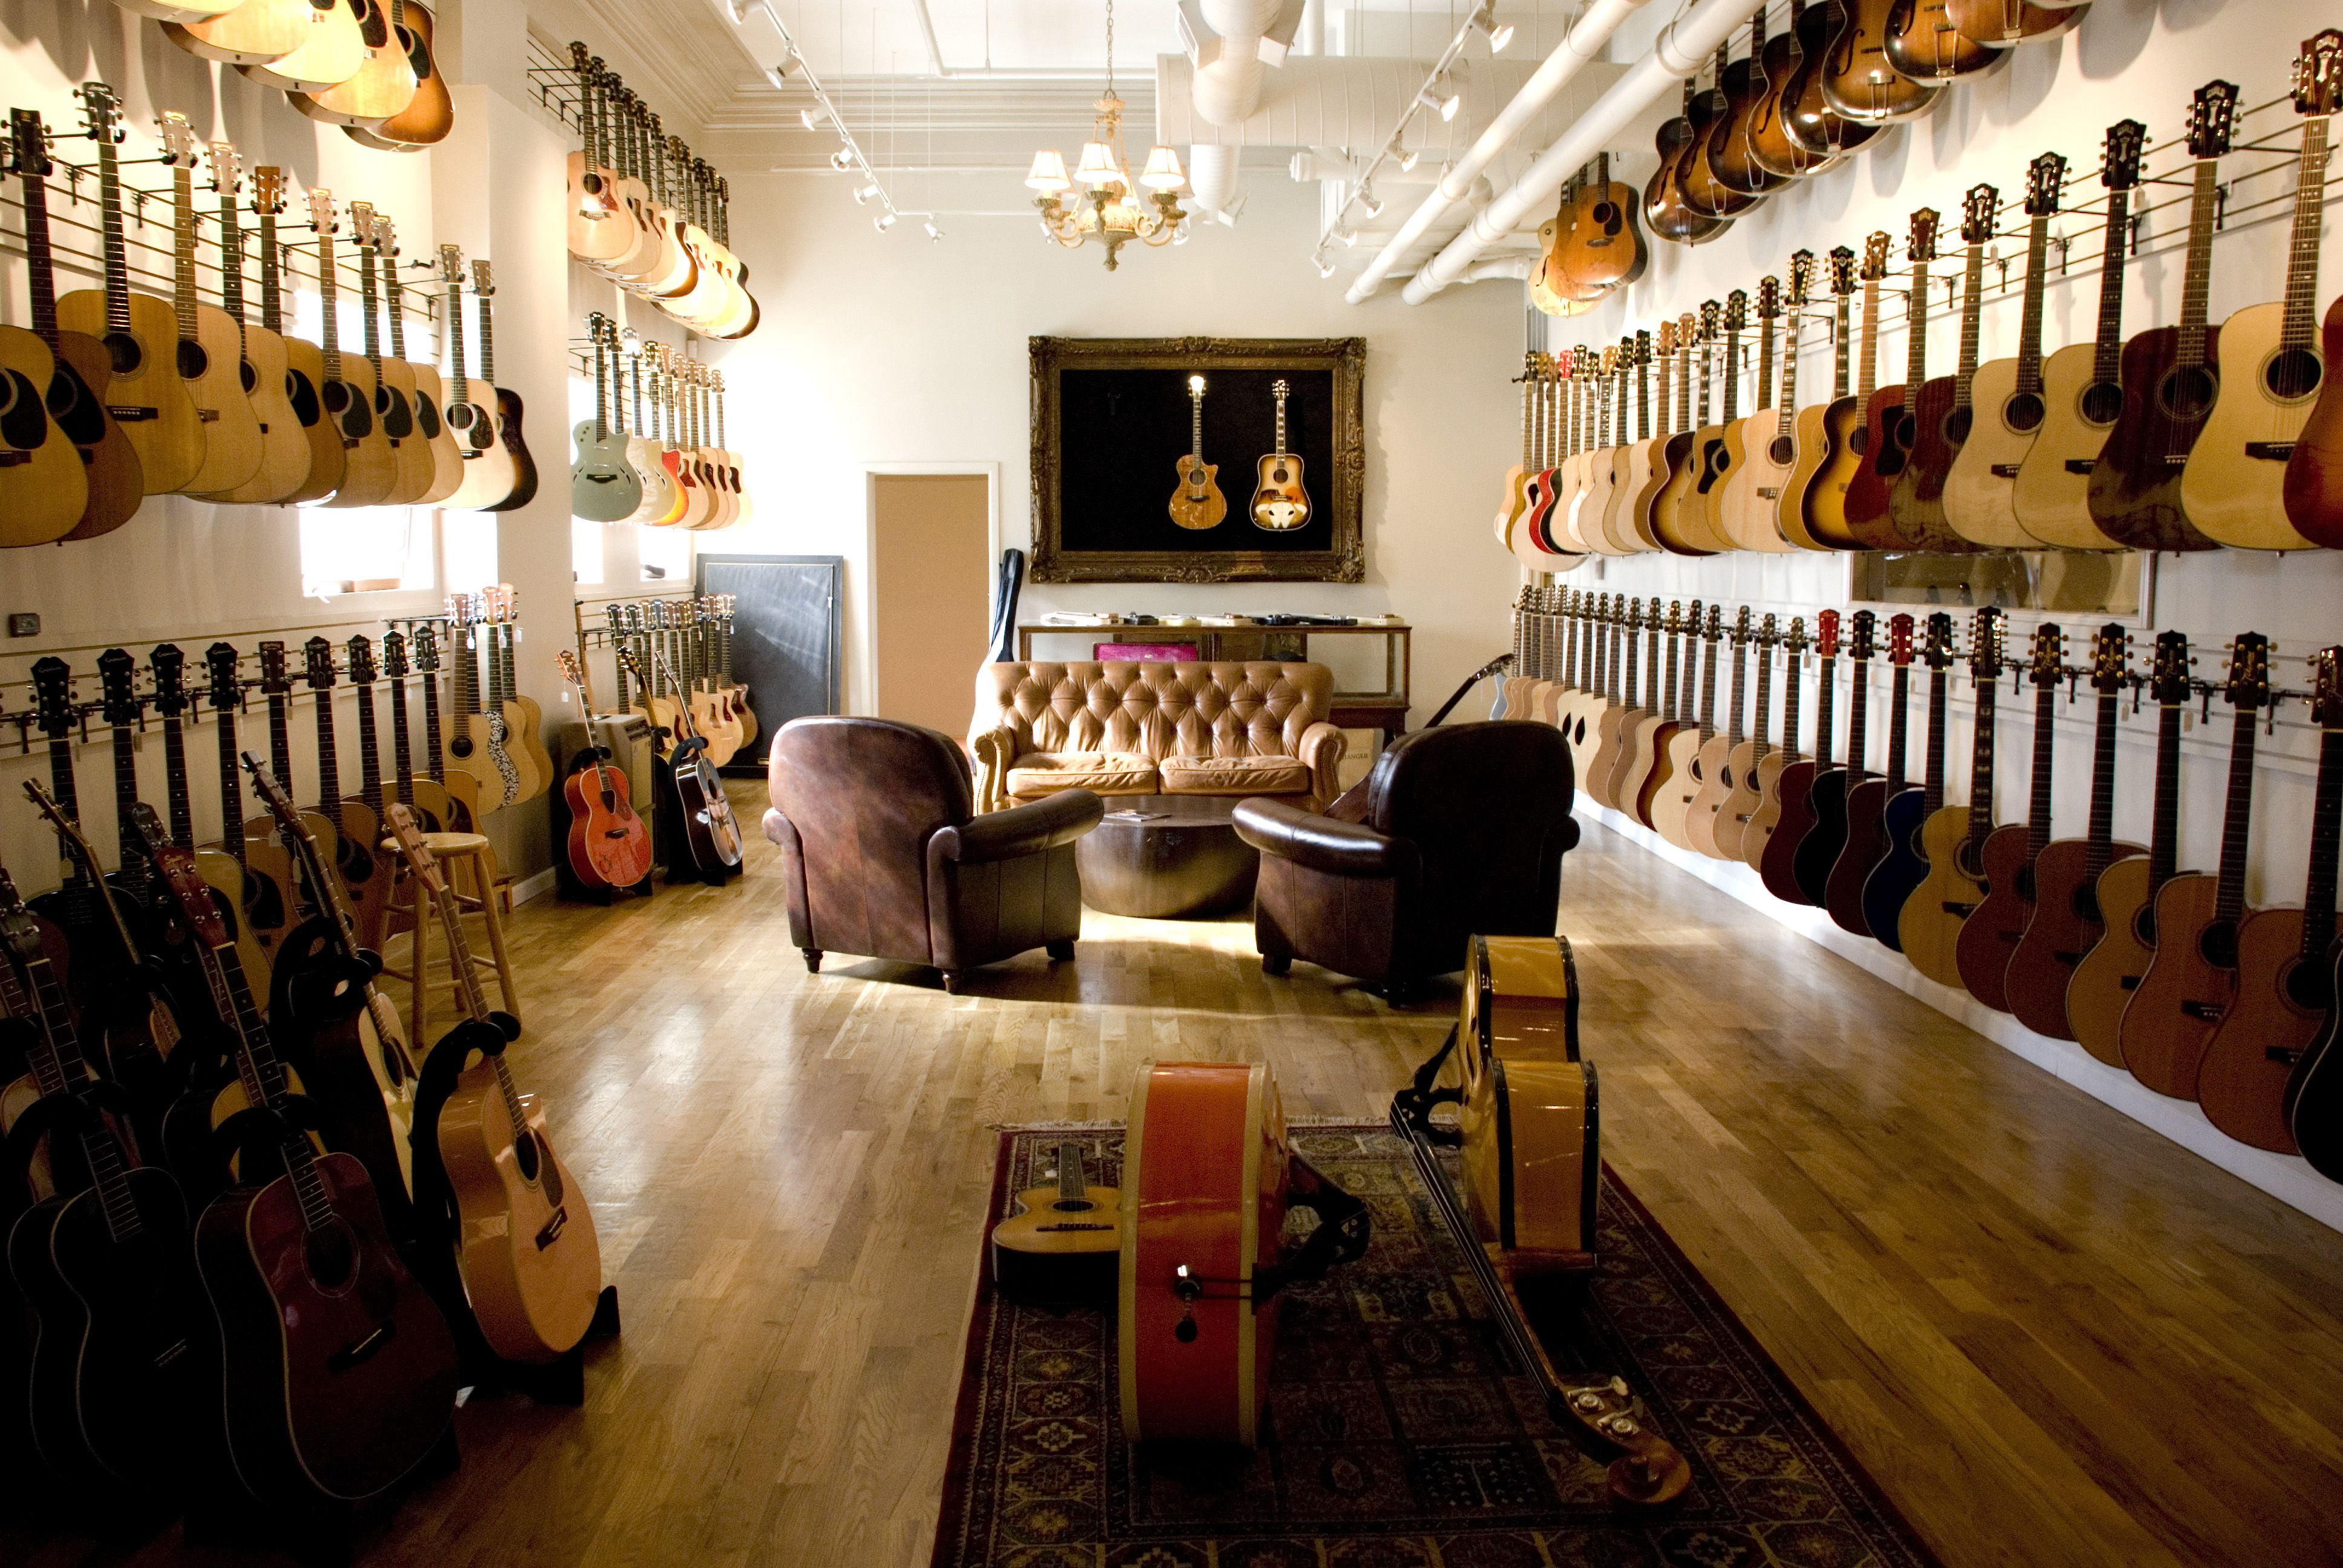 acoustic heaven chicago music exchange illinois us by rick goltowski nickelodeon guitar. Black Bedroom Furniture Sets. Home Design Ideas